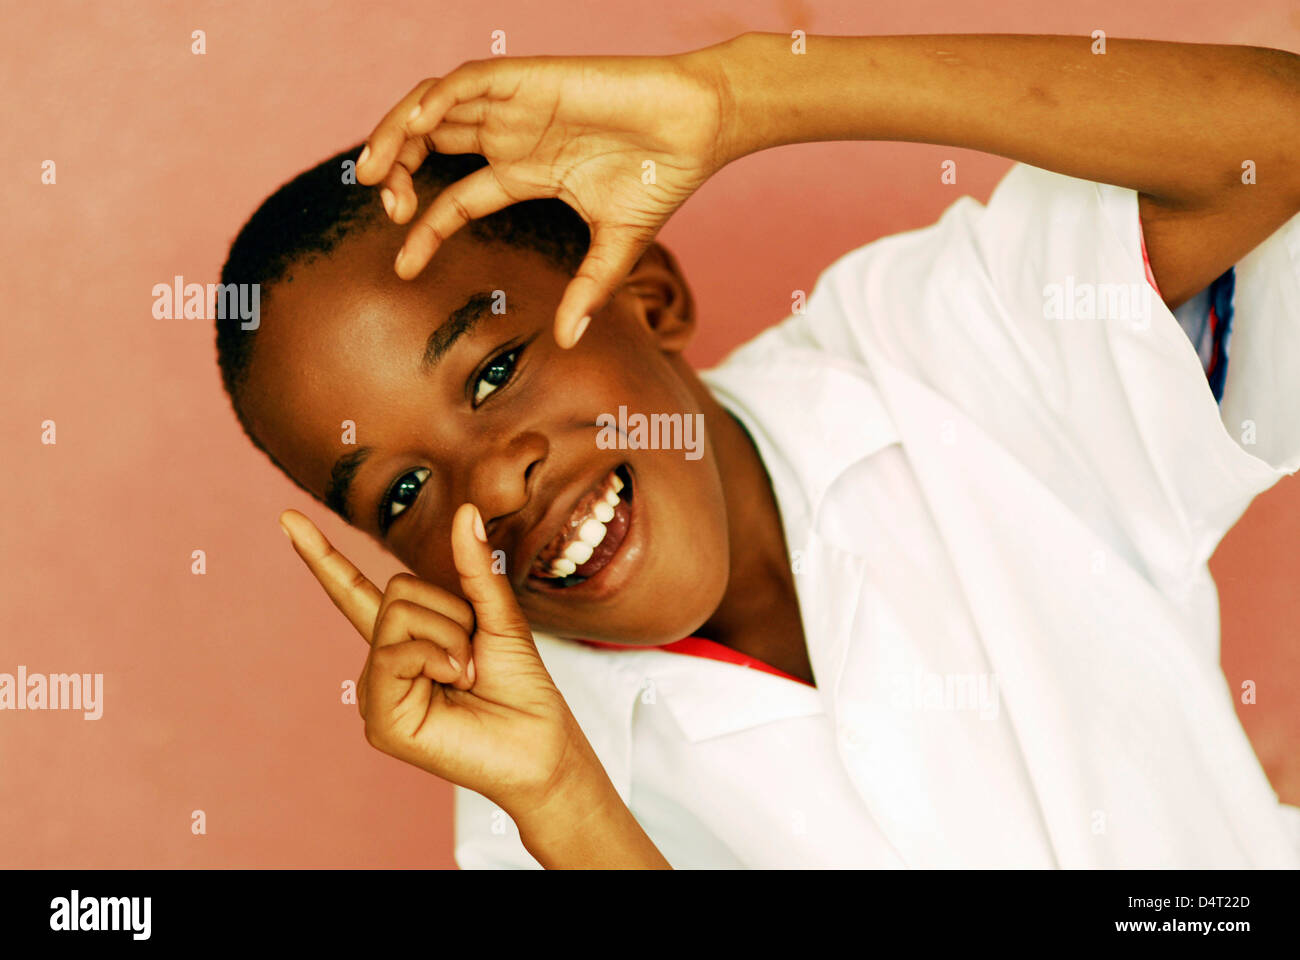 Africa, Angola, Luanda, close-up portrait of a cheerful little African boy in a white shirt gesturing. (MR) - Stock Image